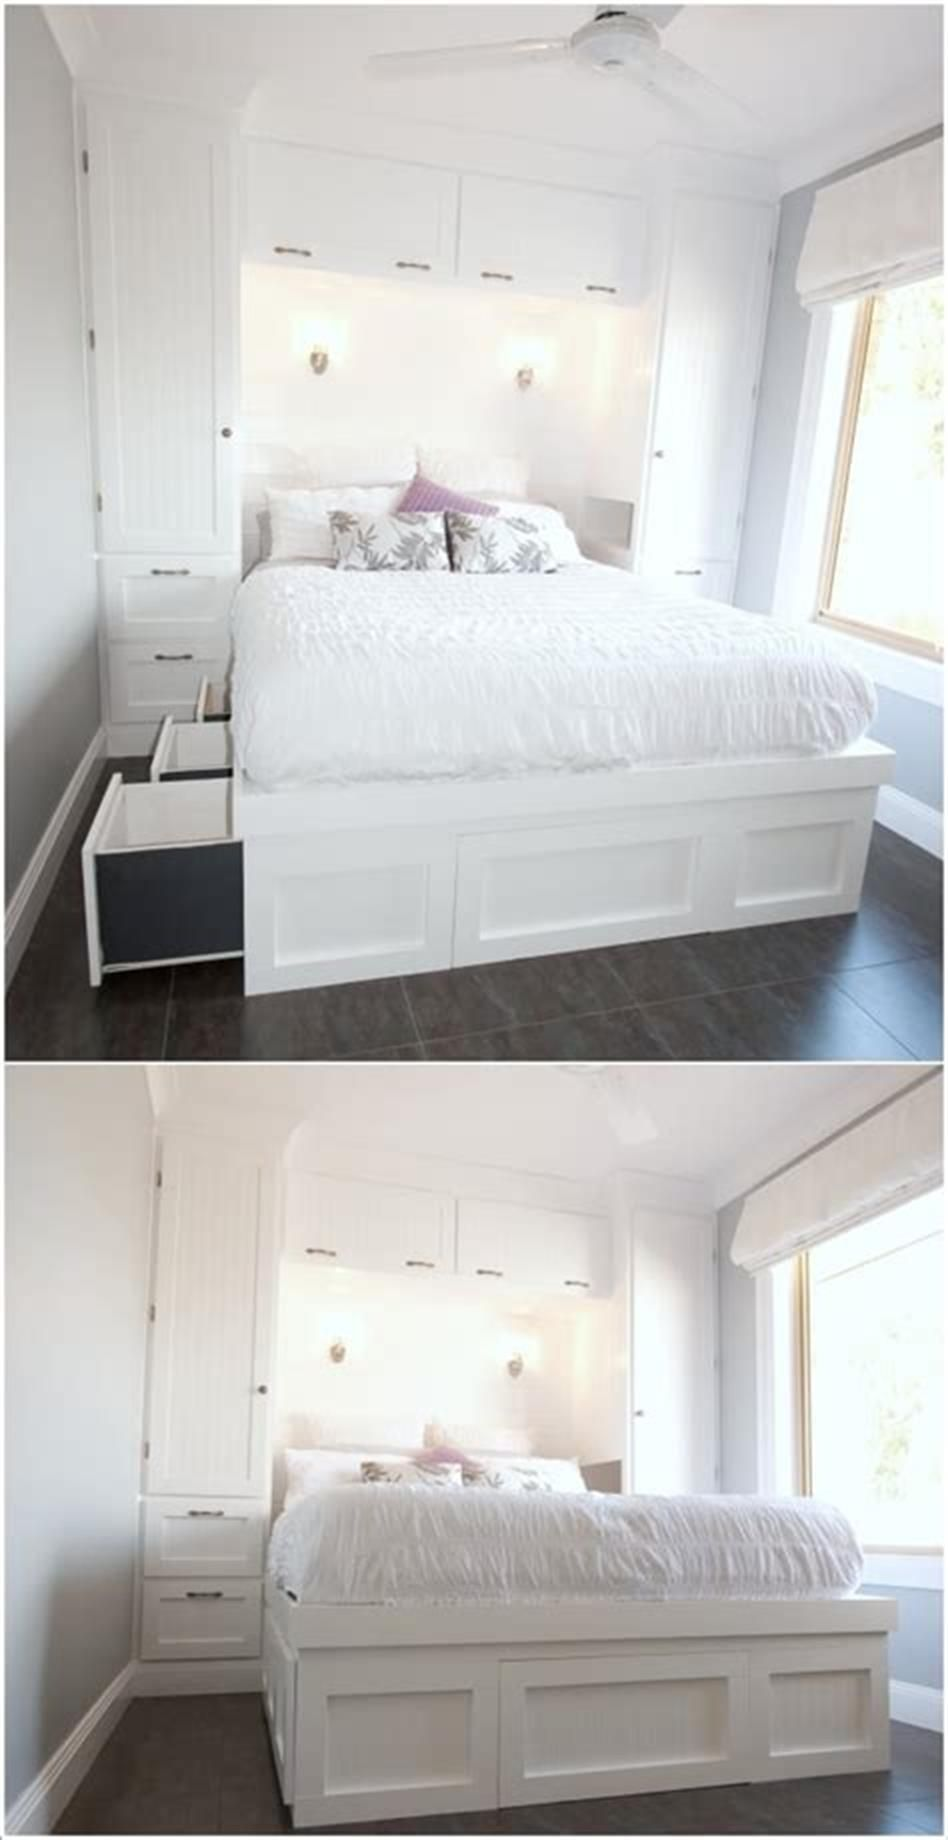 Best 45 Storage Ideas For Small Bedrooms On A Budget Comedecor Small Room Design Tiny Bedroom Small Bedroom